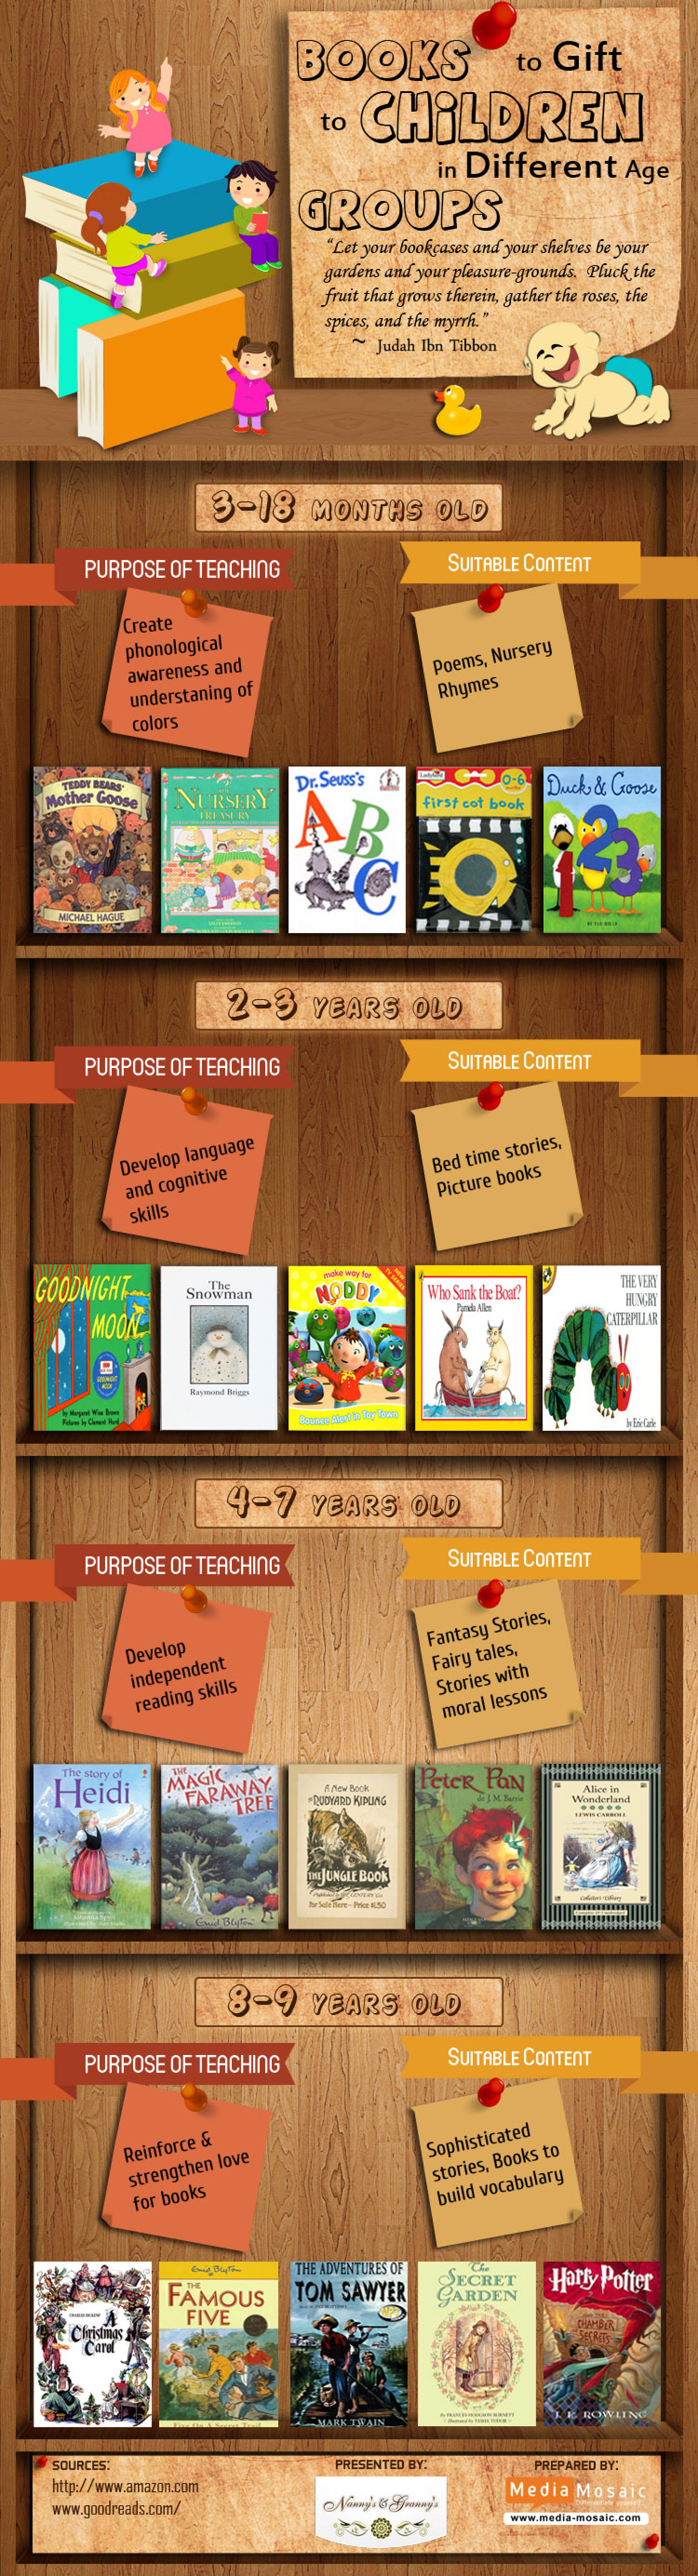 Books to gift to children in different age groups Infographic